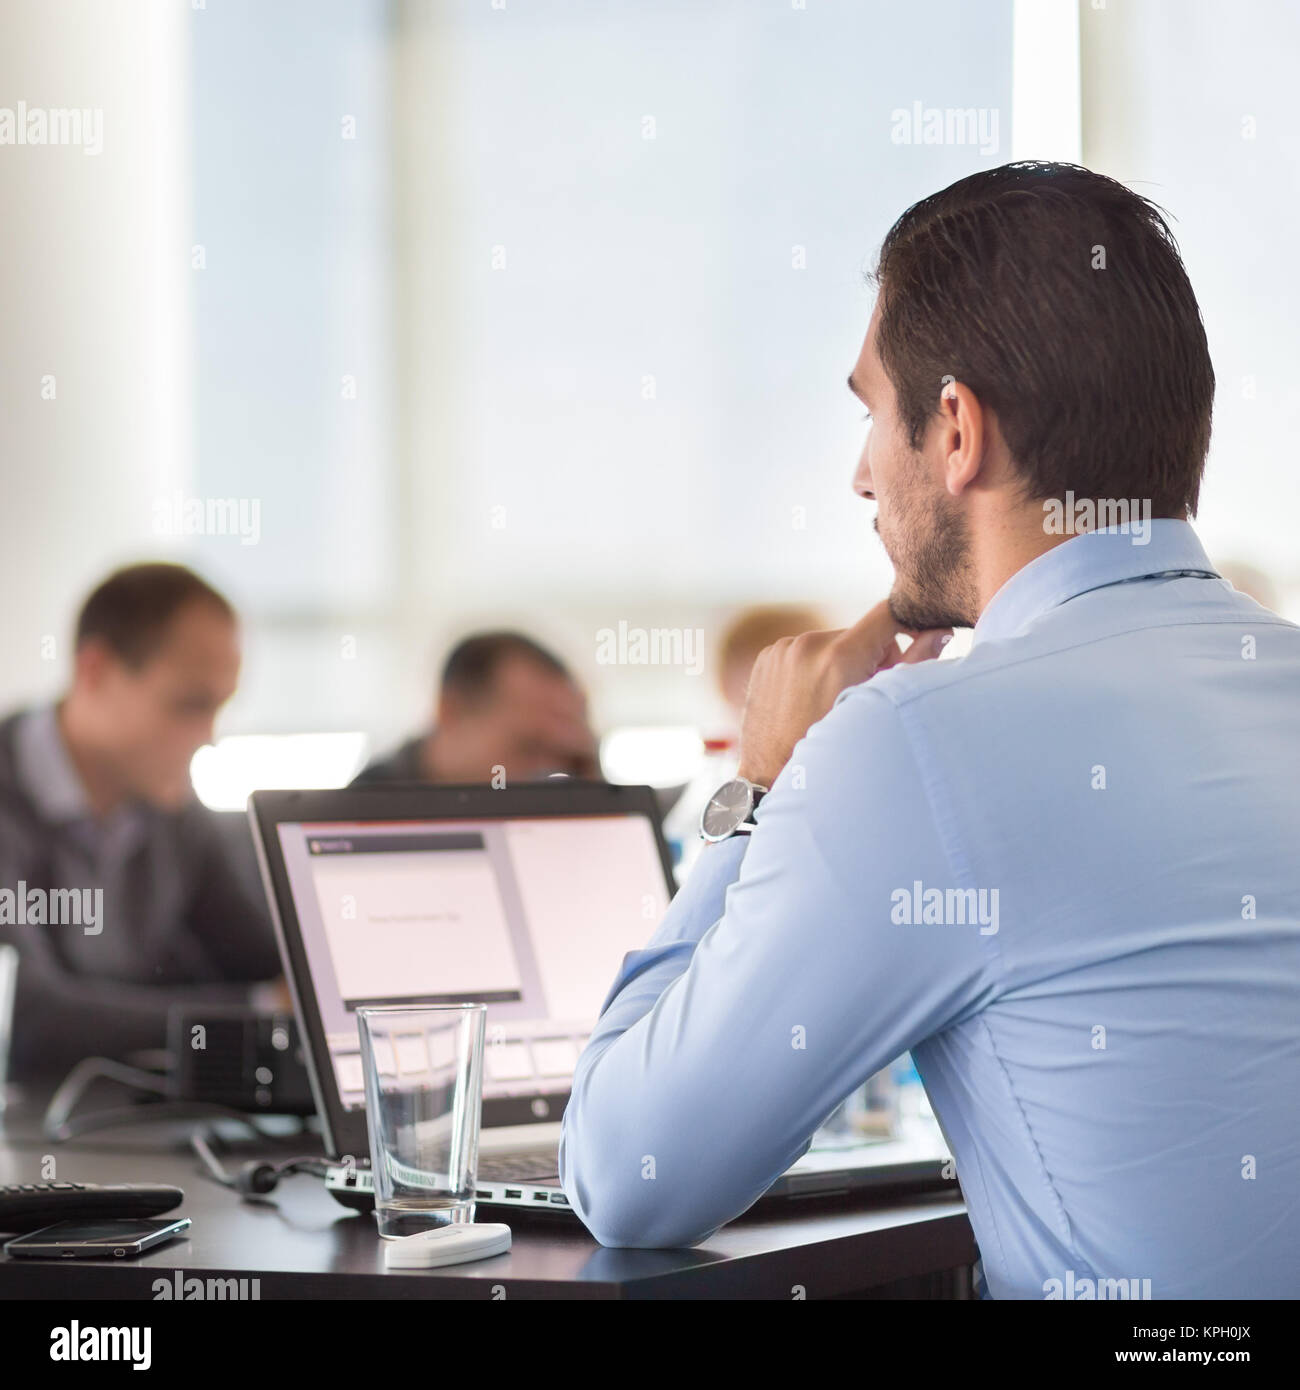 Corporate business meeting. - Stock Image